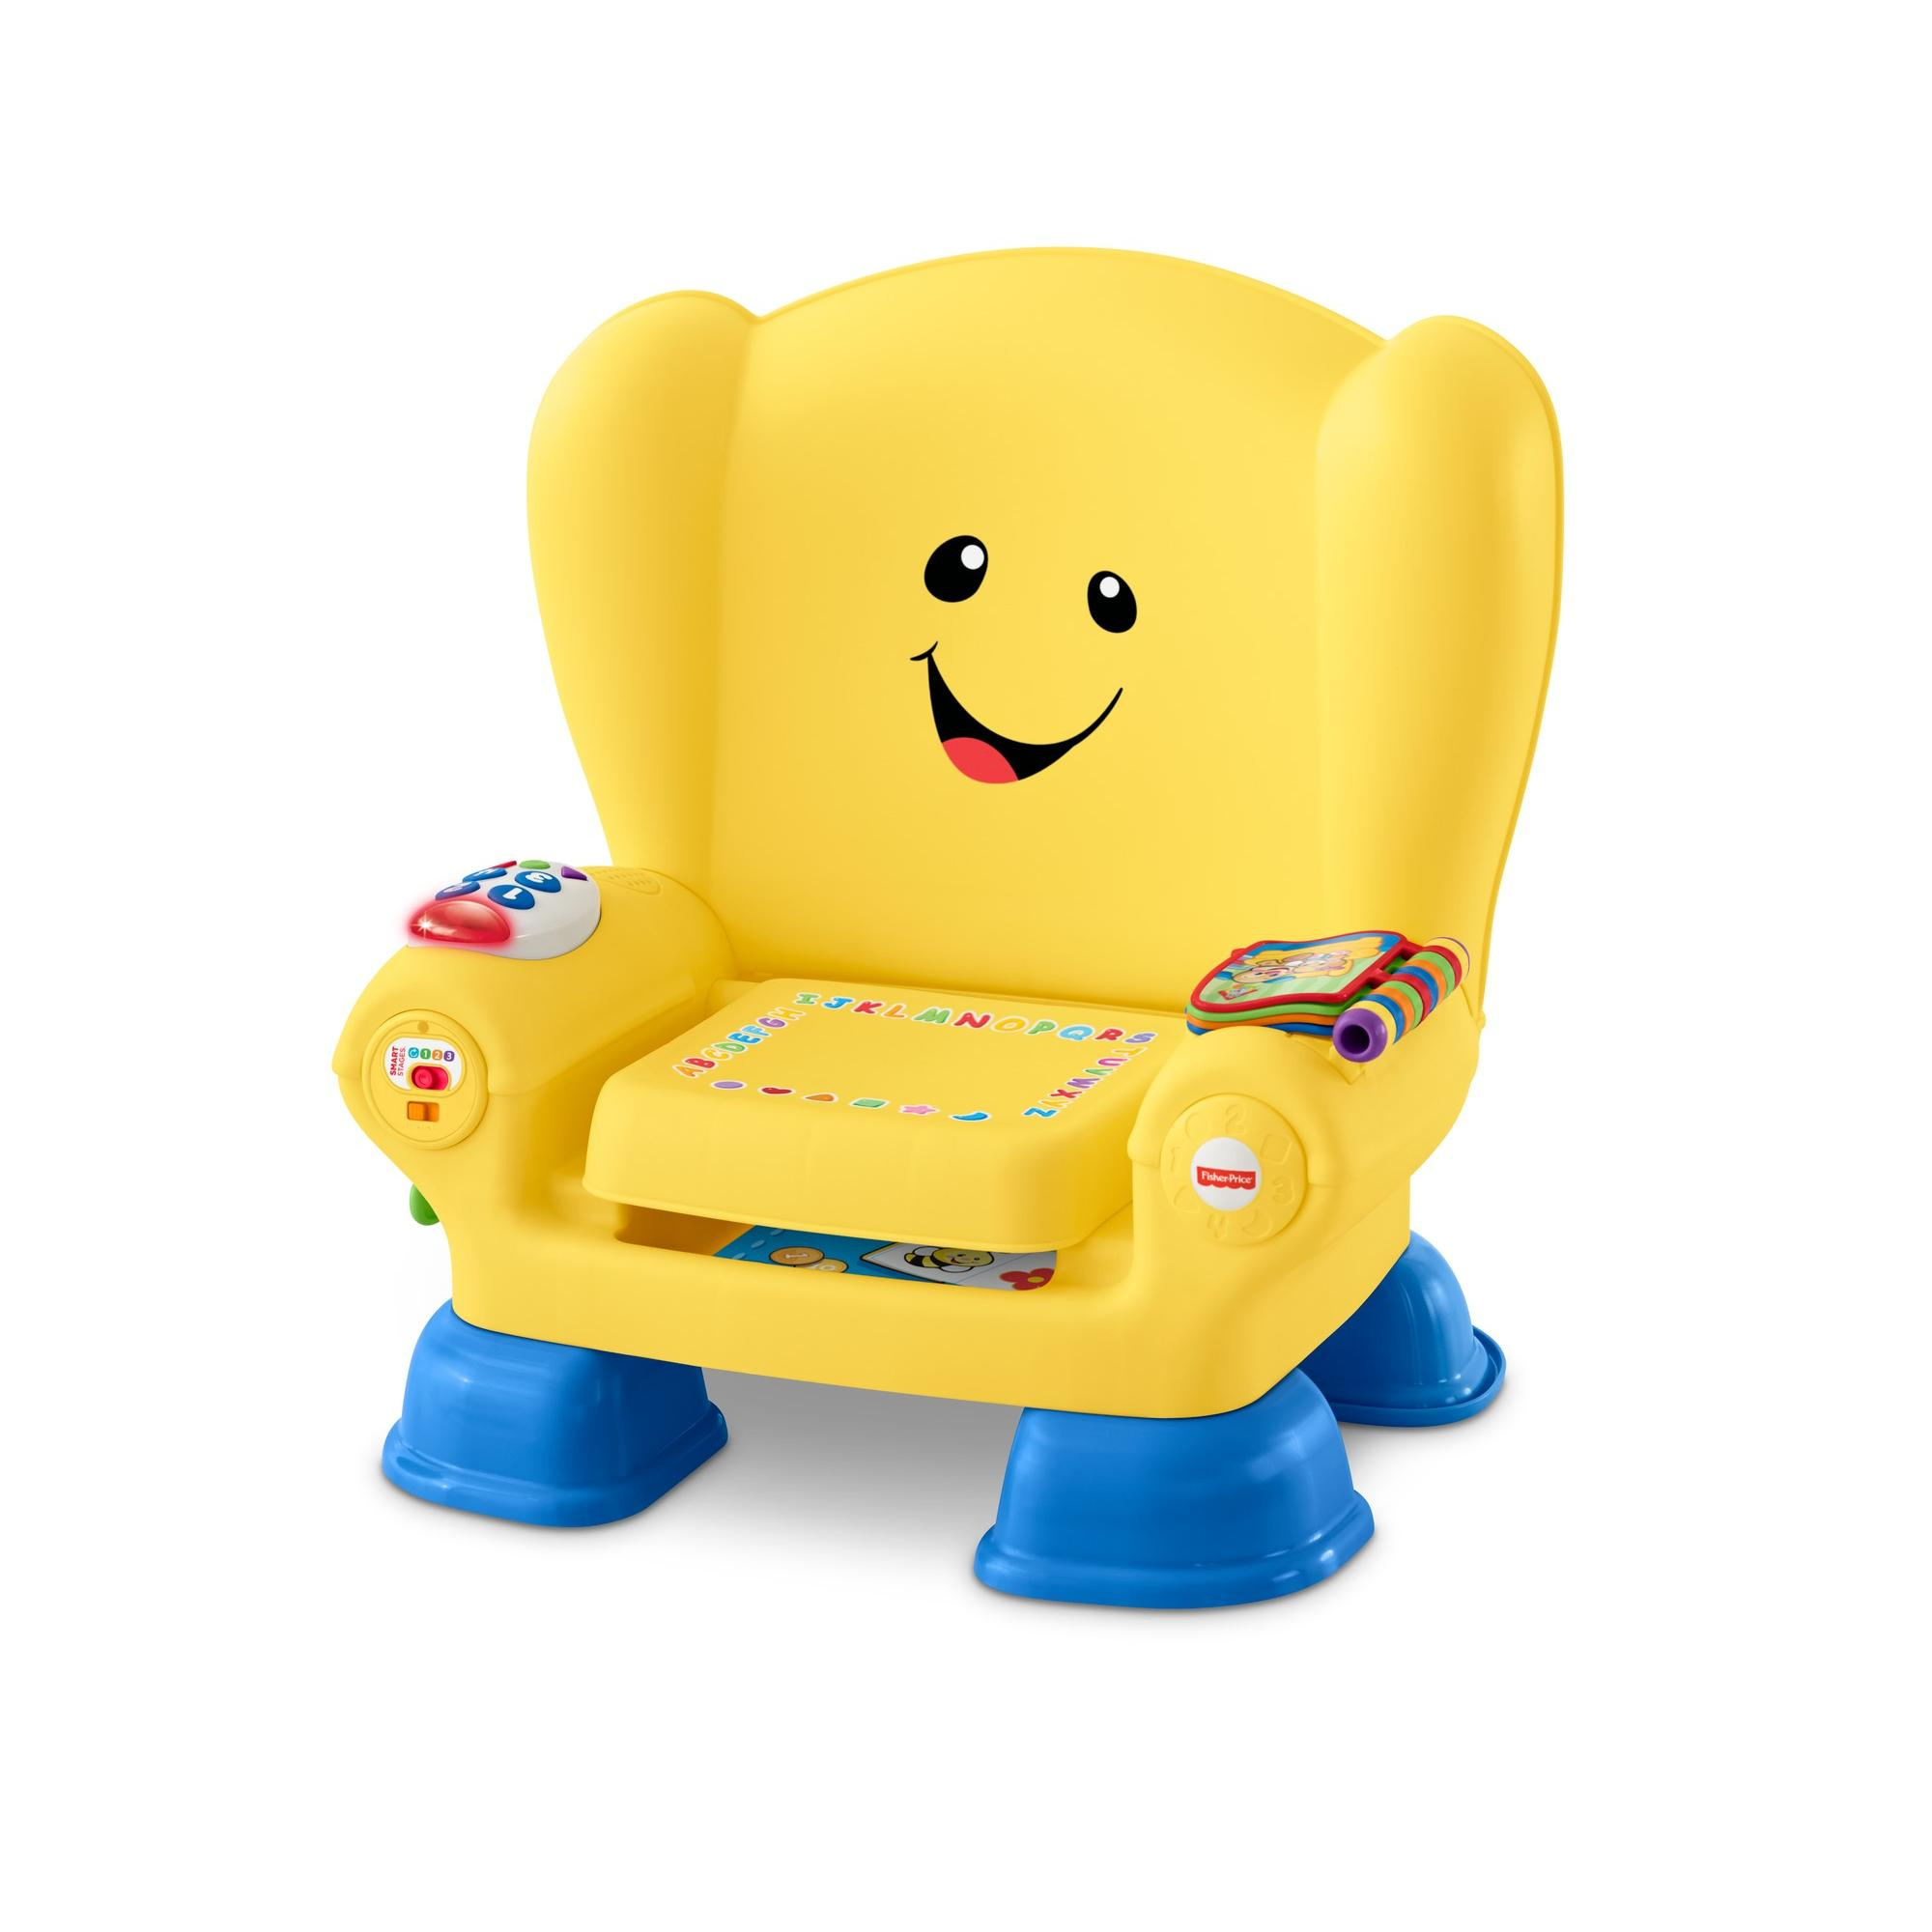 Fisher-Price Laugh \u0026 Learn Smart Stages Chair Toys for 2 Year Old Boys